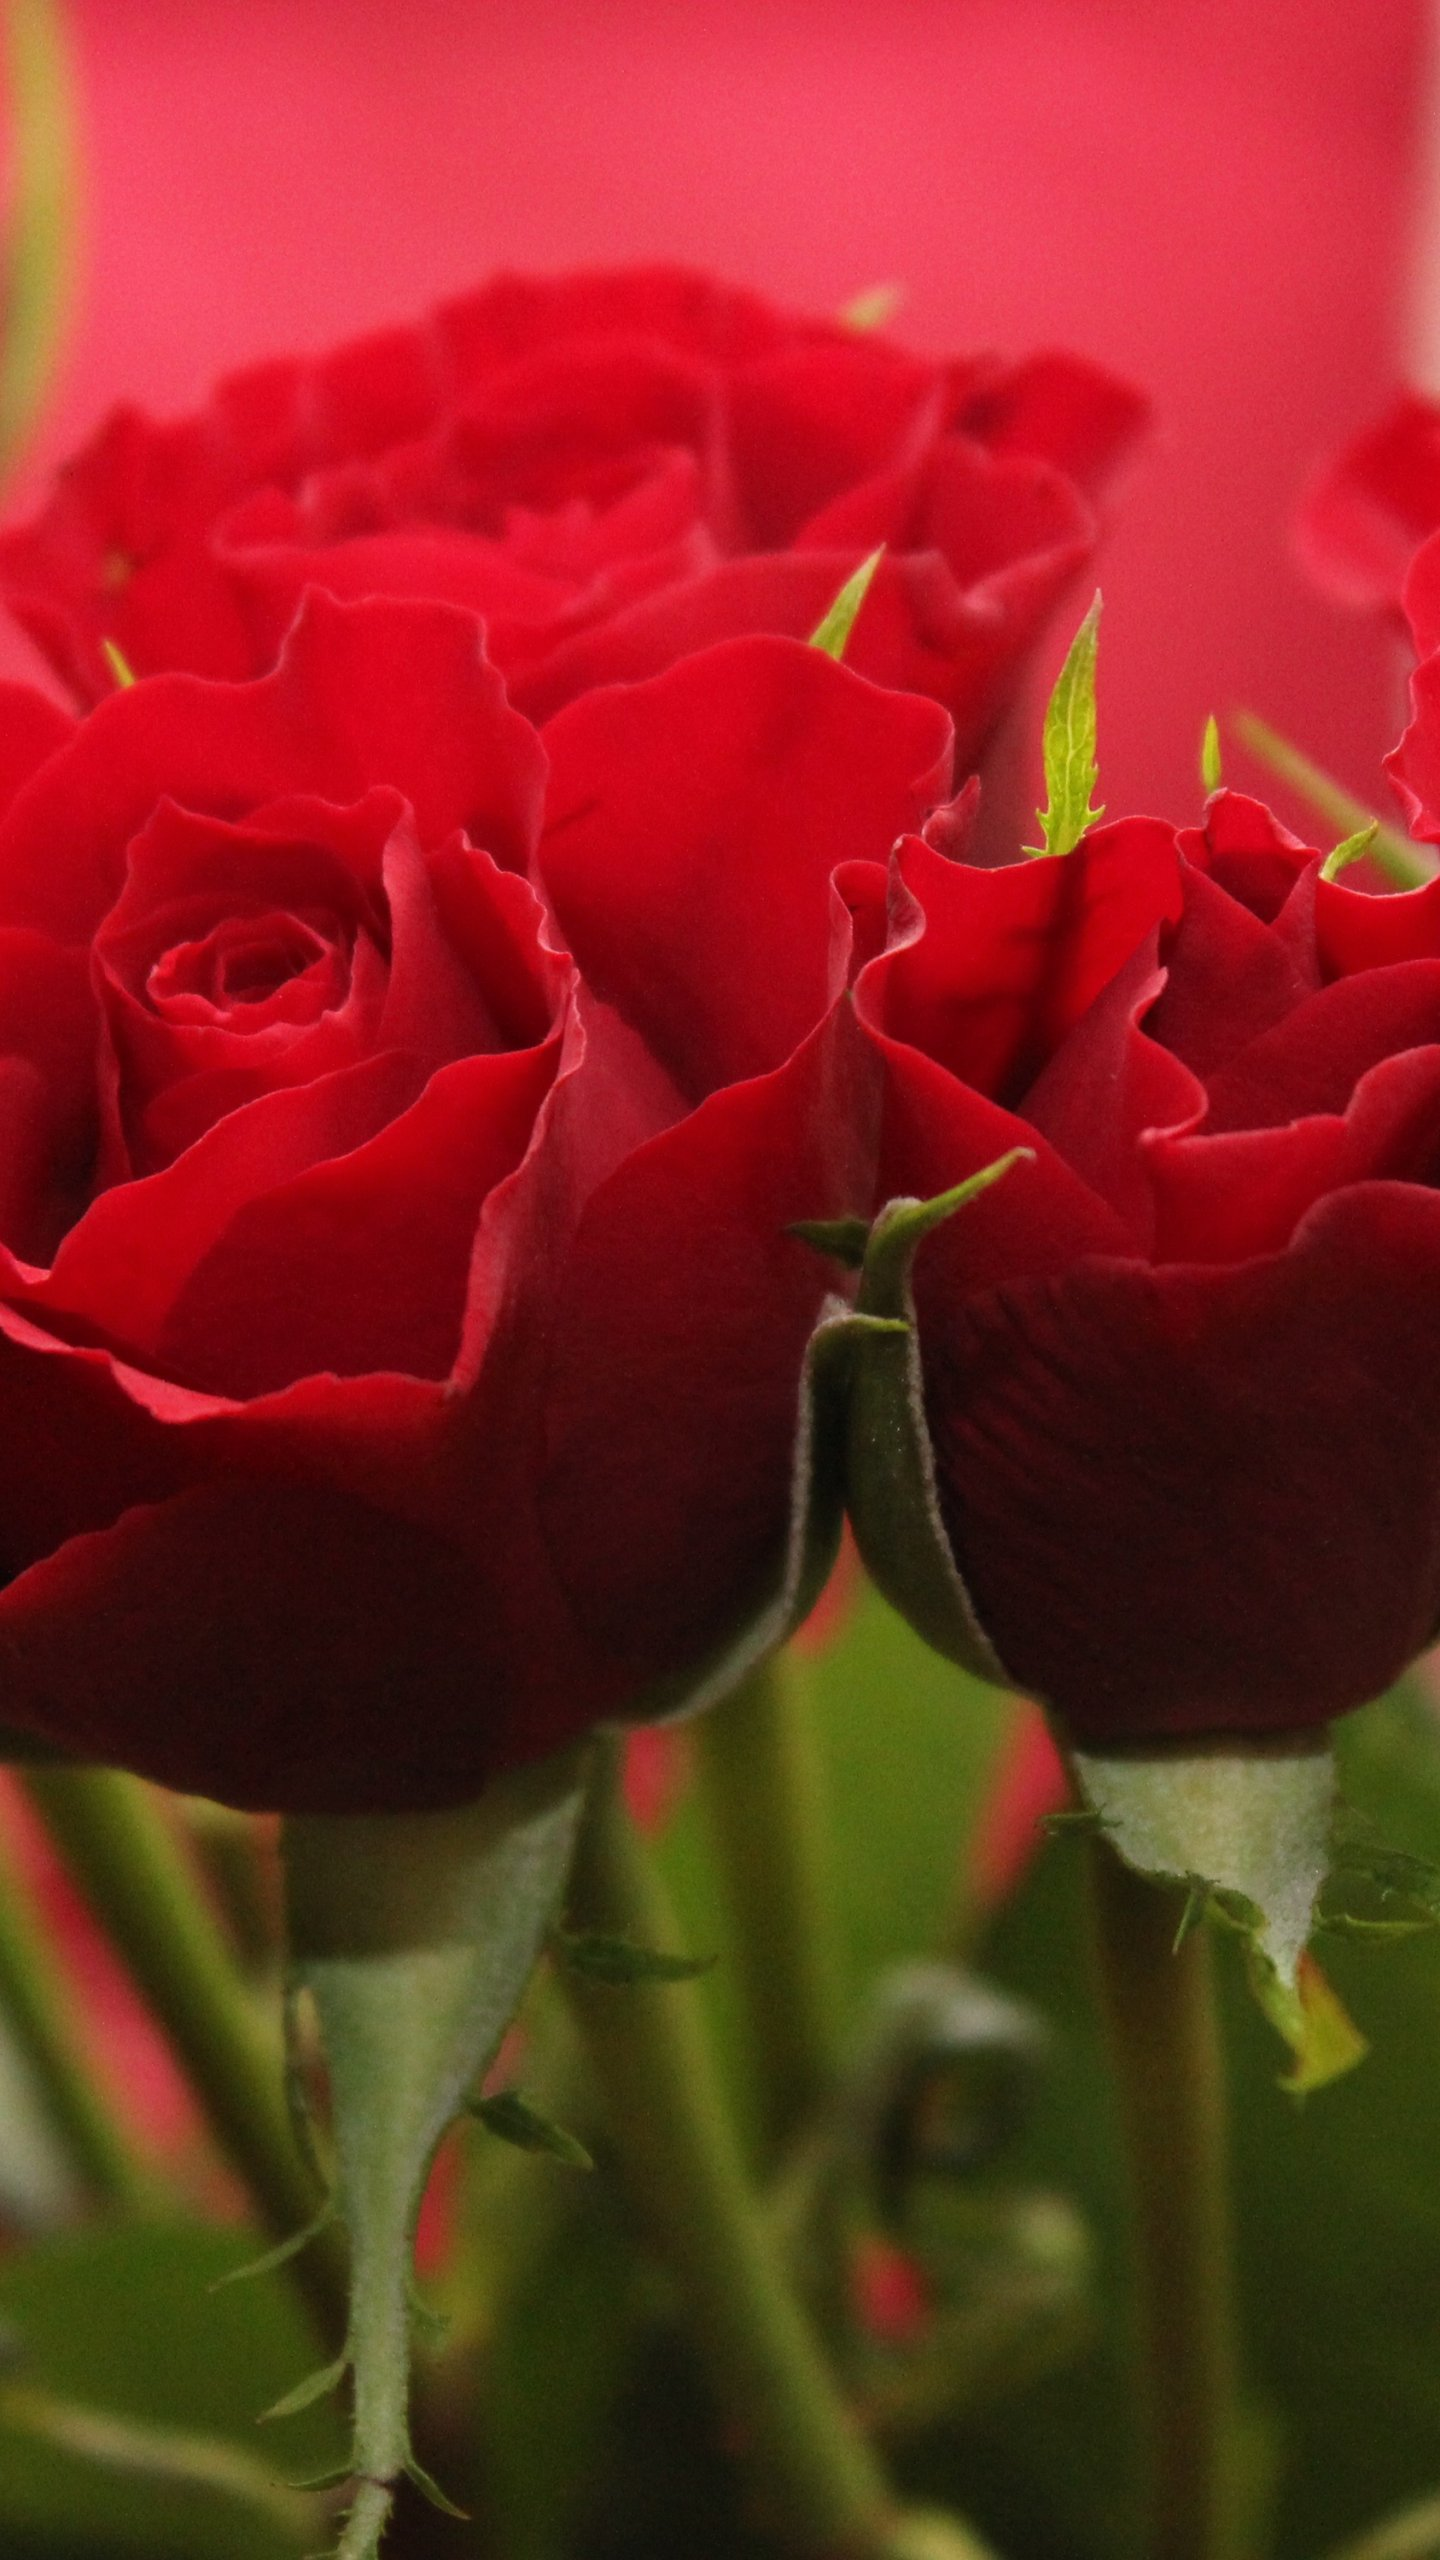 Luxury Wallpapers Of Red Roses